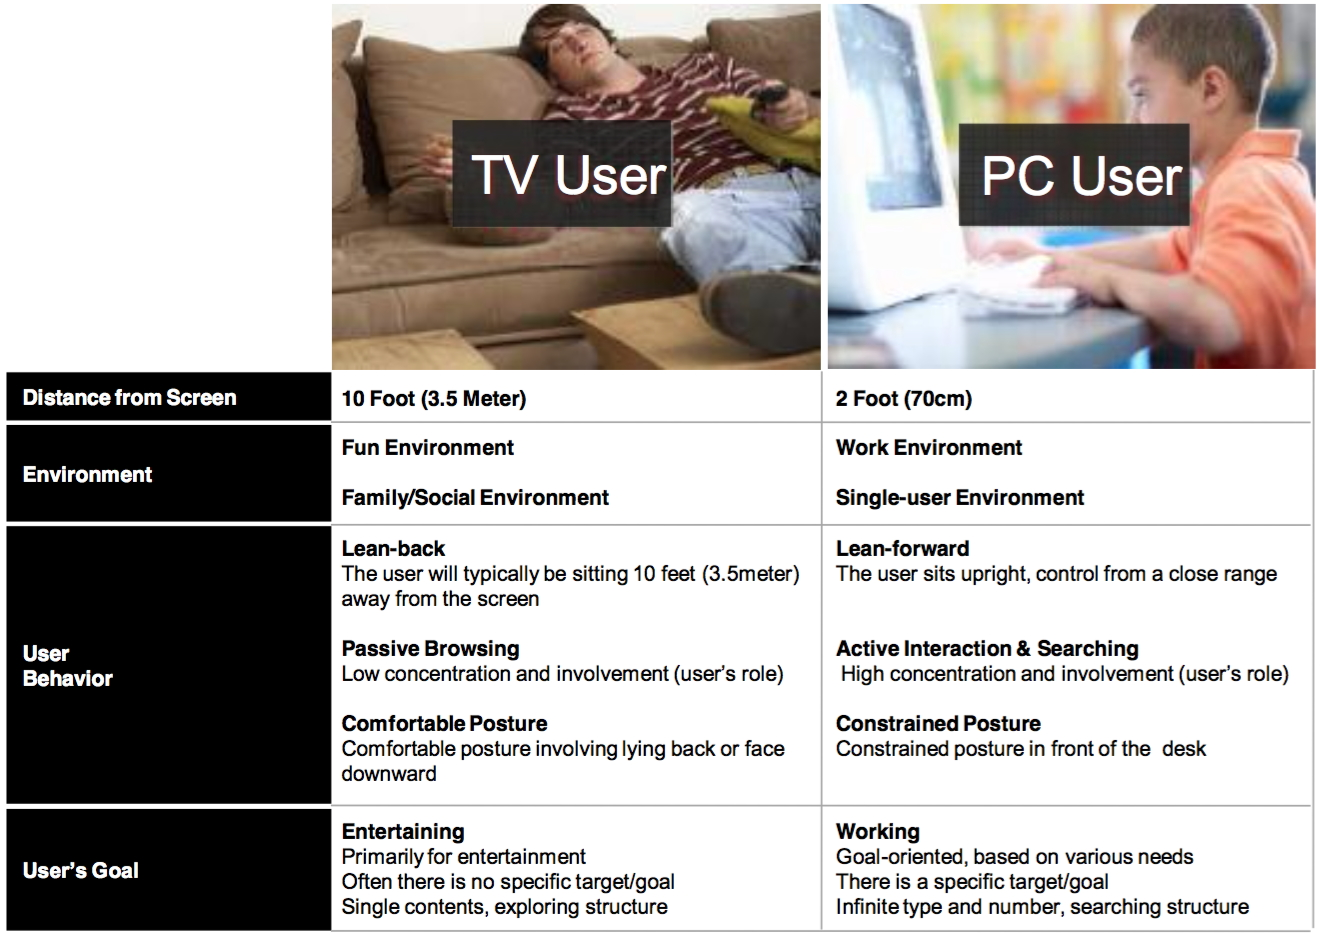 Tv User, PC User